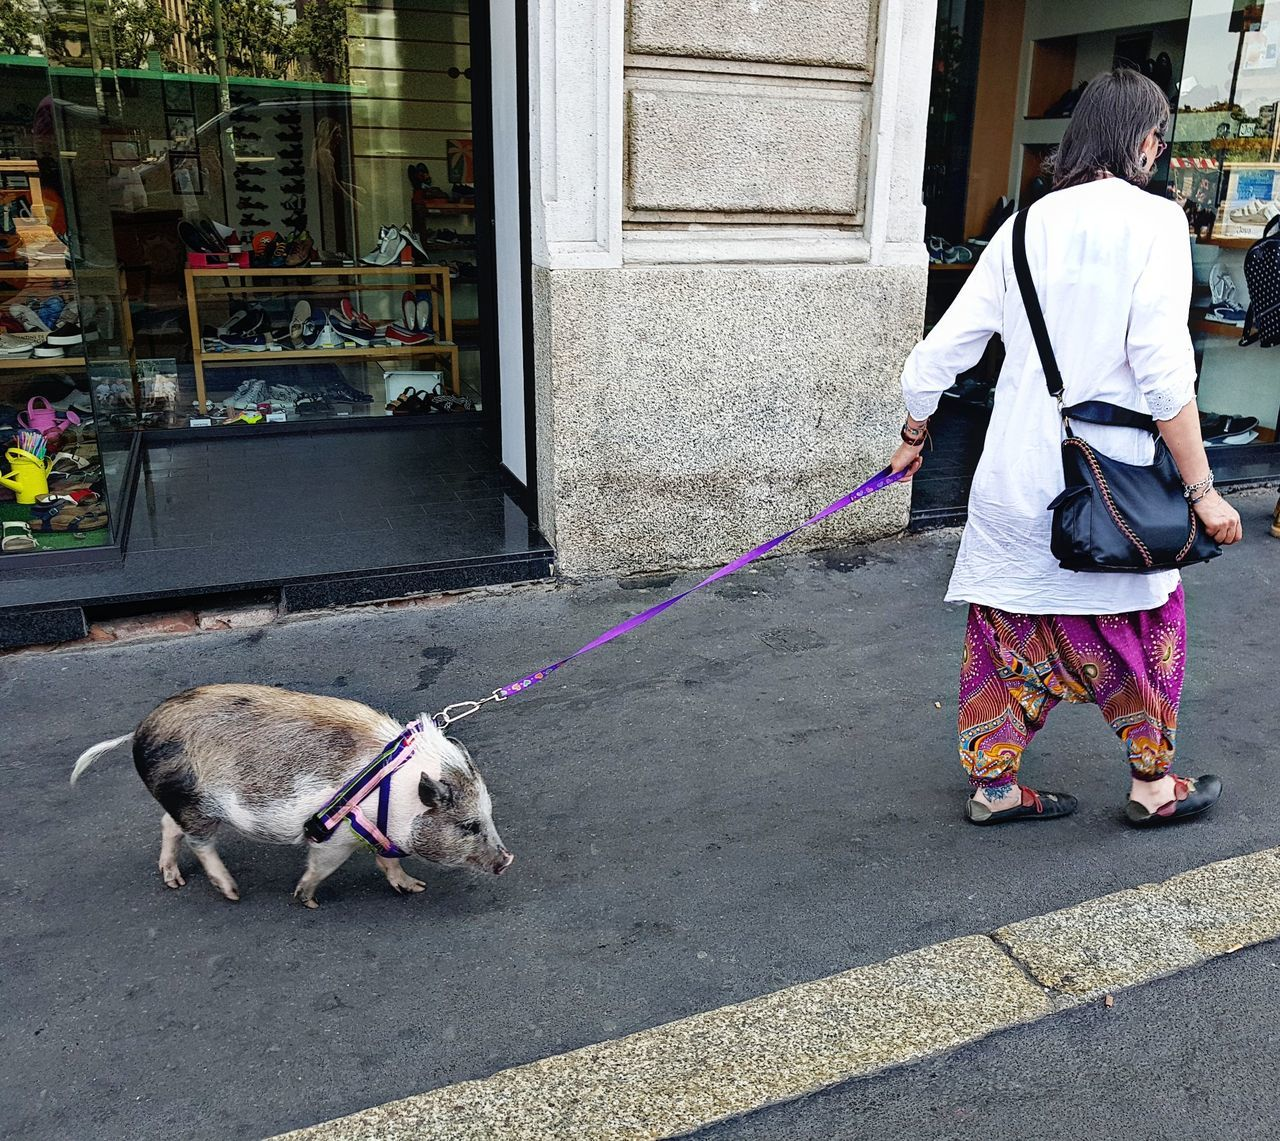 Oddities From The World Pork Crazy Moments Animal Themes Domestic Animals Ontheroad People Real People Strangethings Bizzare PeppaPigWorld 😂 Peppa In Town Peppapig The Street Photographer - 2017 EyeEm Awards